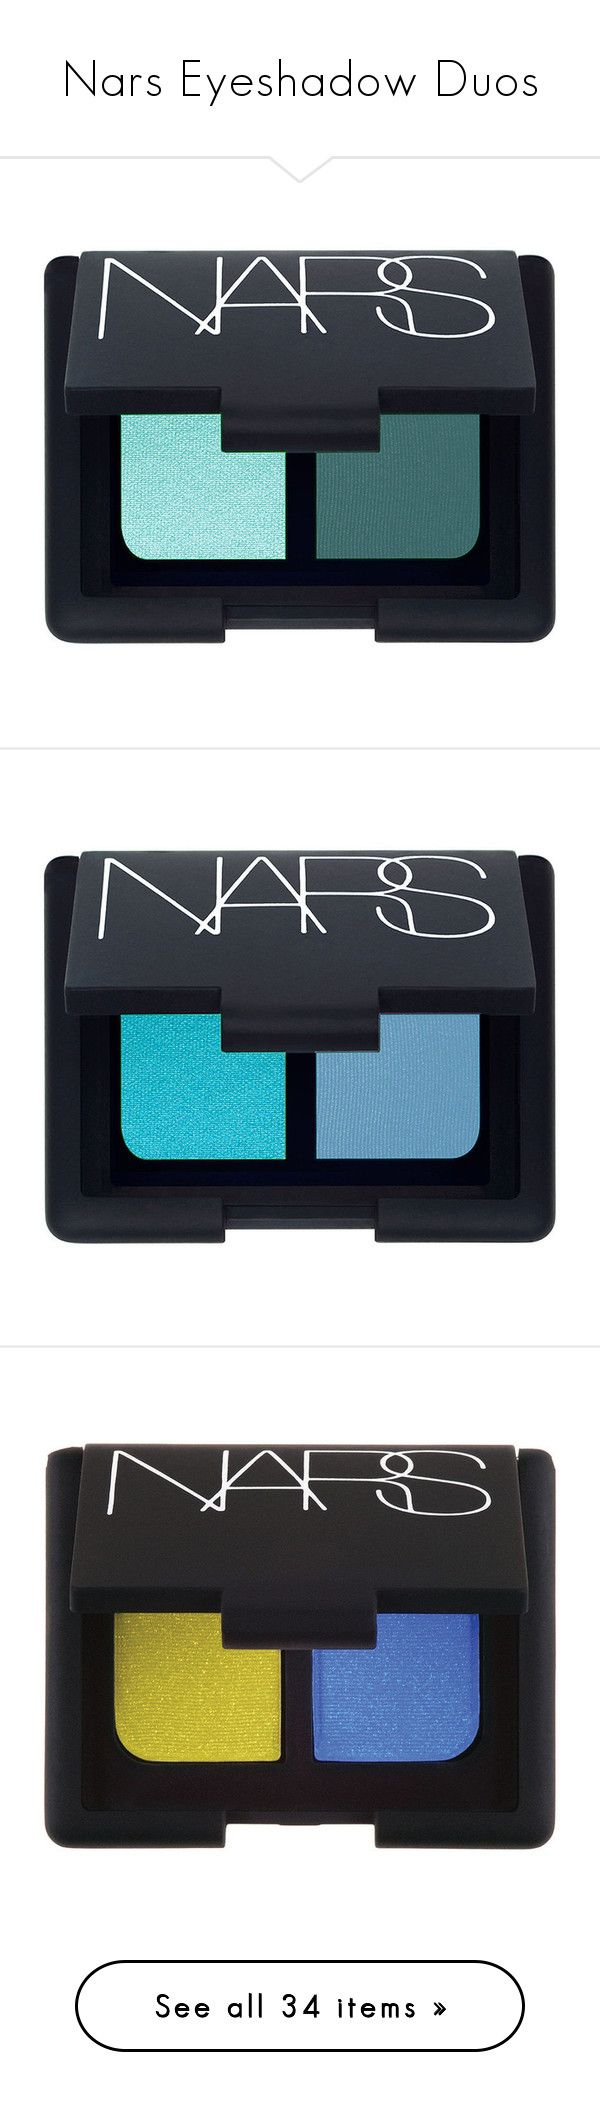 """""""Nars Eyeshadow Duos"""" by banoffz ❤ liked on Polyvore featuring beauty products, makeup, eye makeup, eyeshadow, beauty, fillers, eye shadow, nars cosmetics, long wear eyeshadow and eyes"""